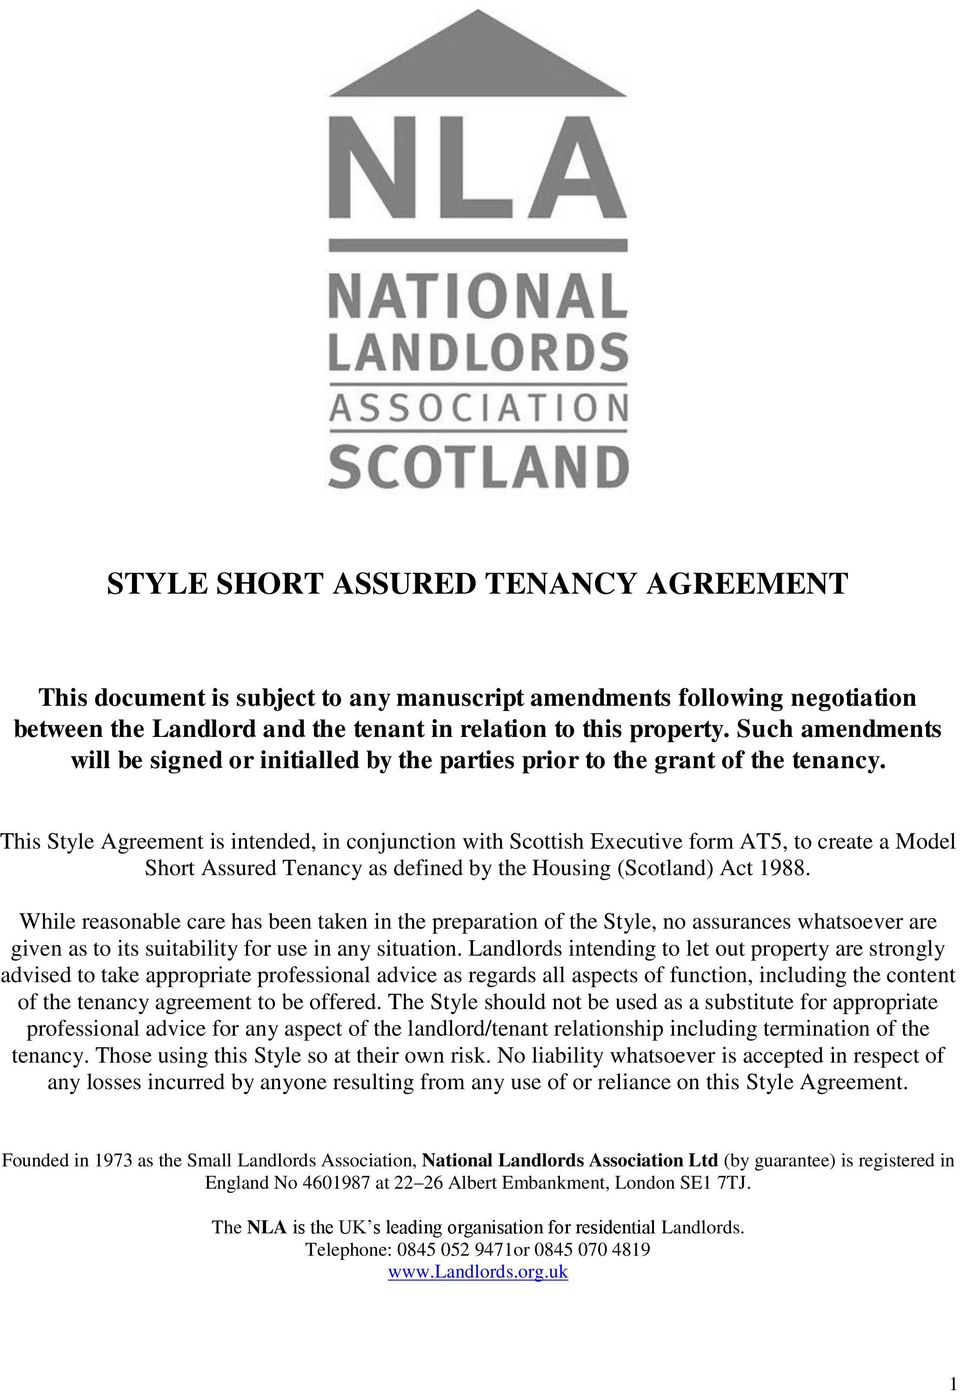 This Style Agreement is intended, in conjunction with Scottish Executive form AT5, to create a Model Short Assured Tenancy as defined by the Housing (Scotland) Act 1988.